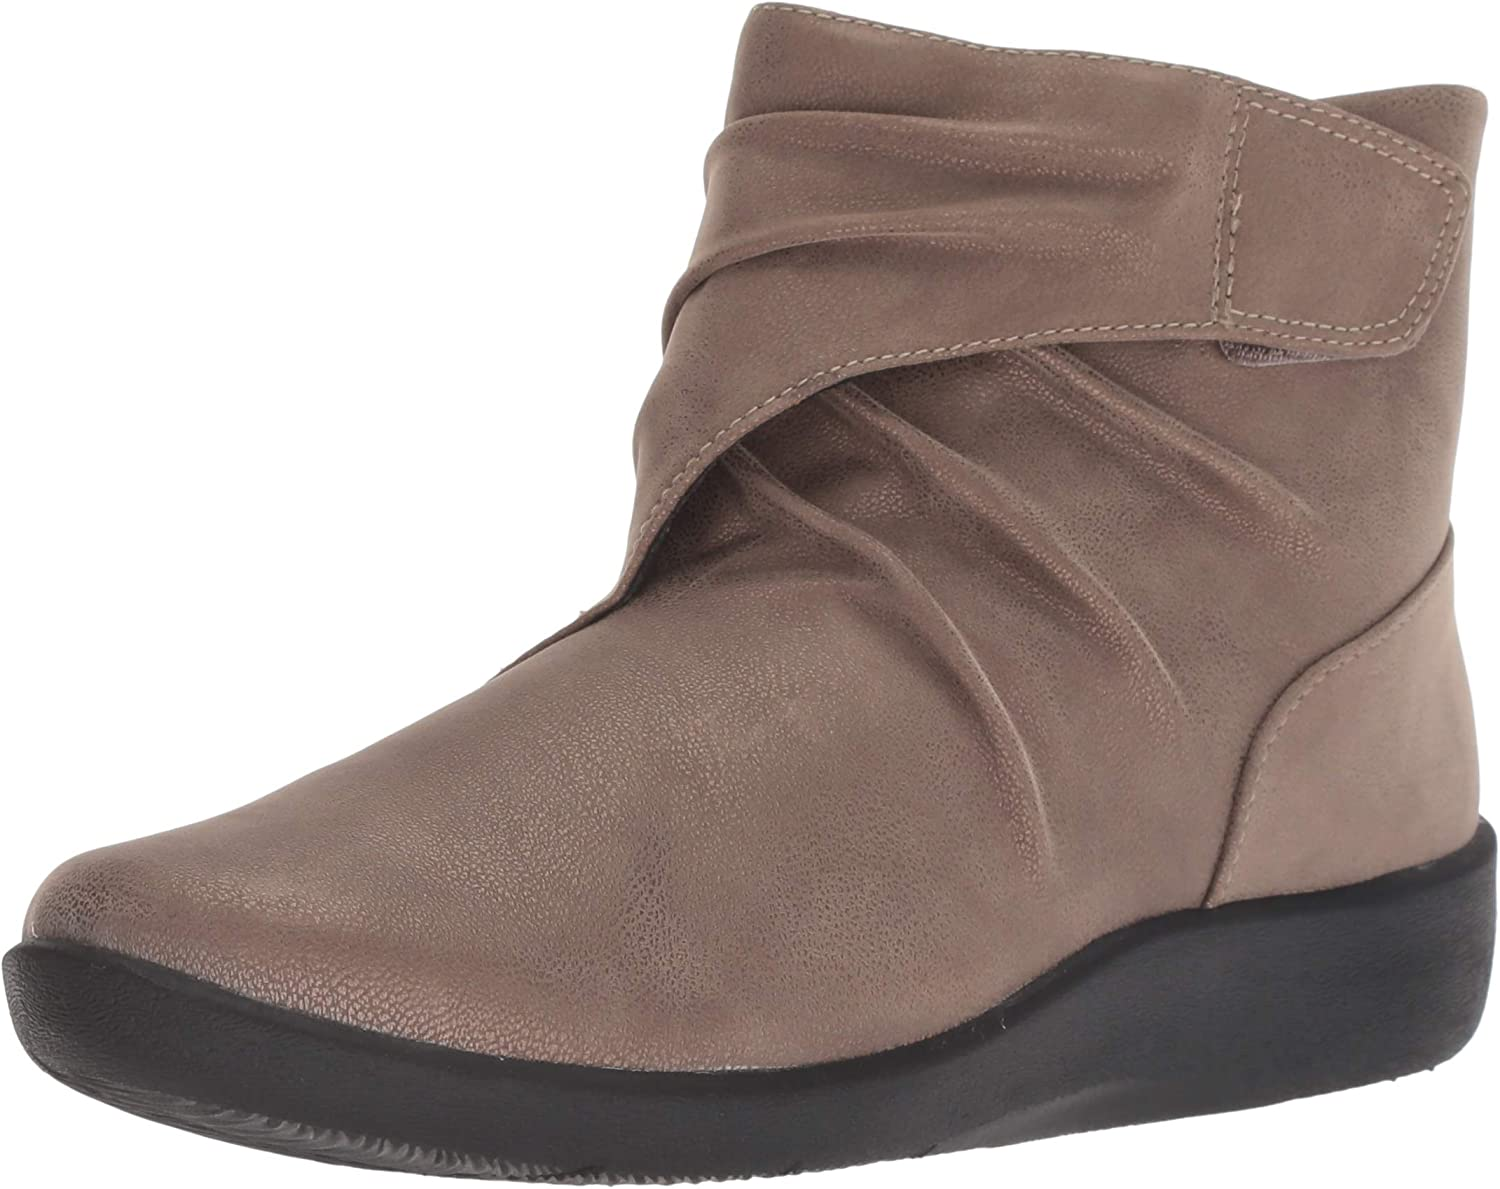 Clarks Women's, Sillian Tana Ankle Boot